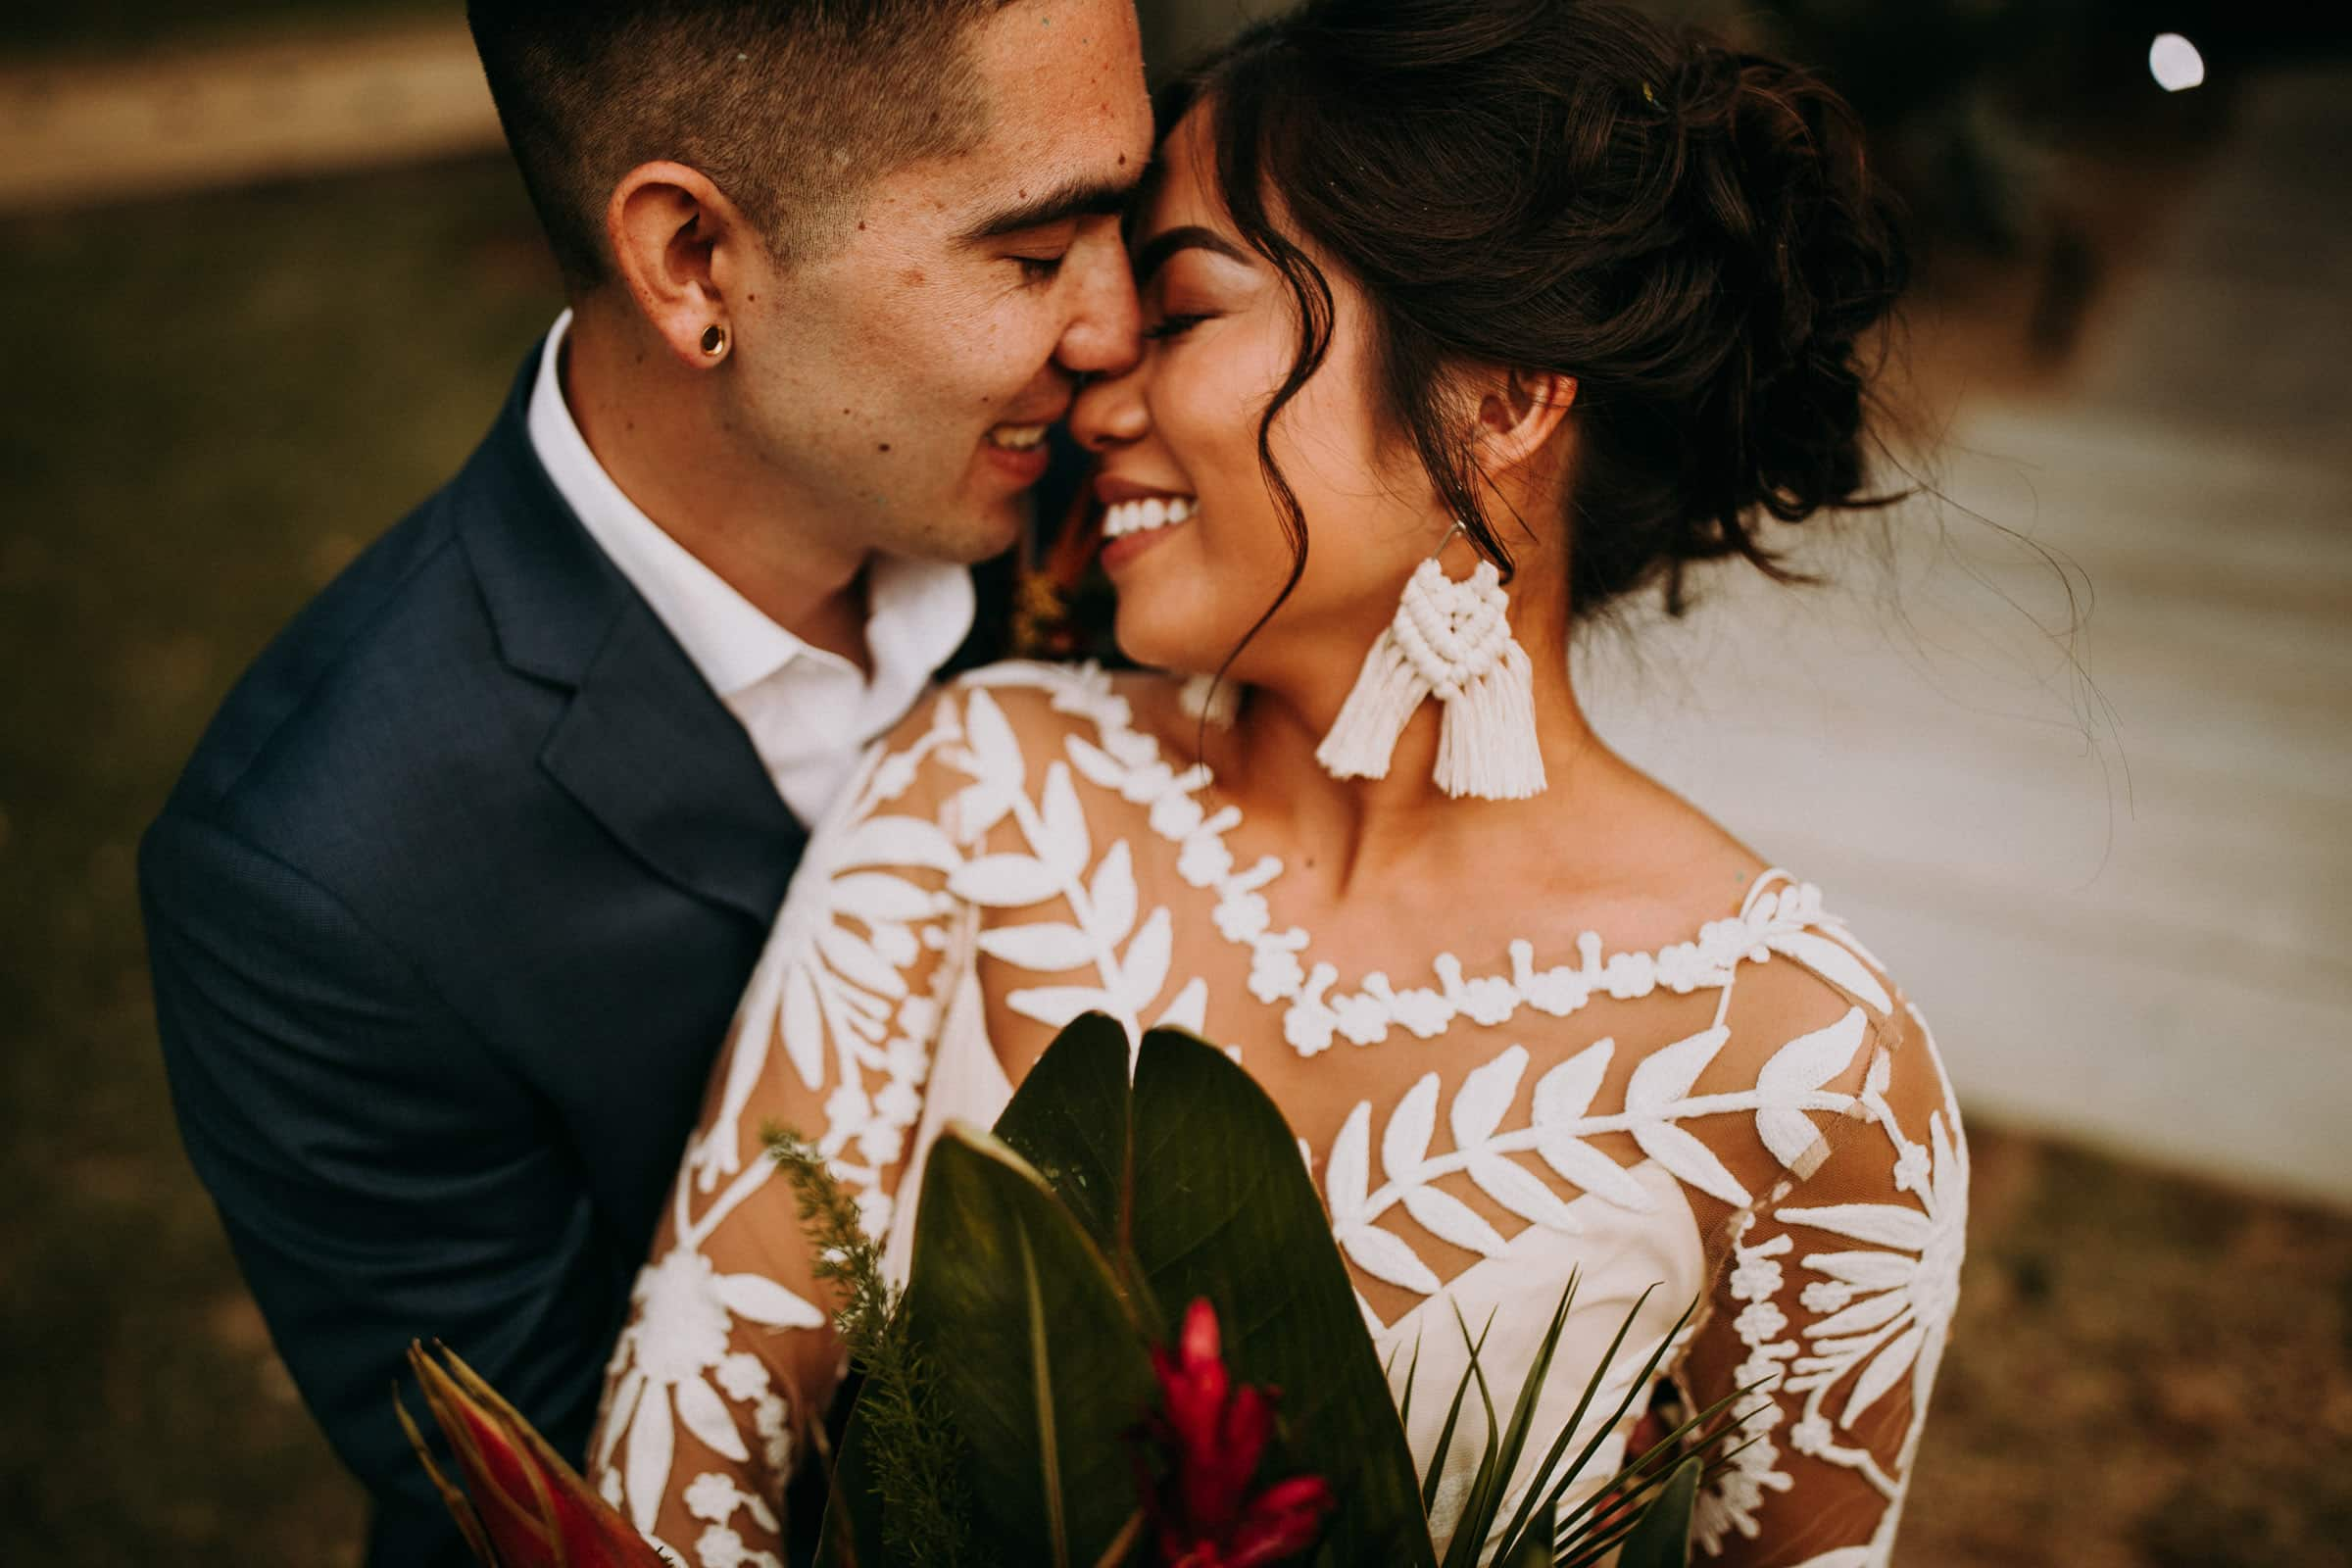 A closeup shows a wedding couple hugging each other.